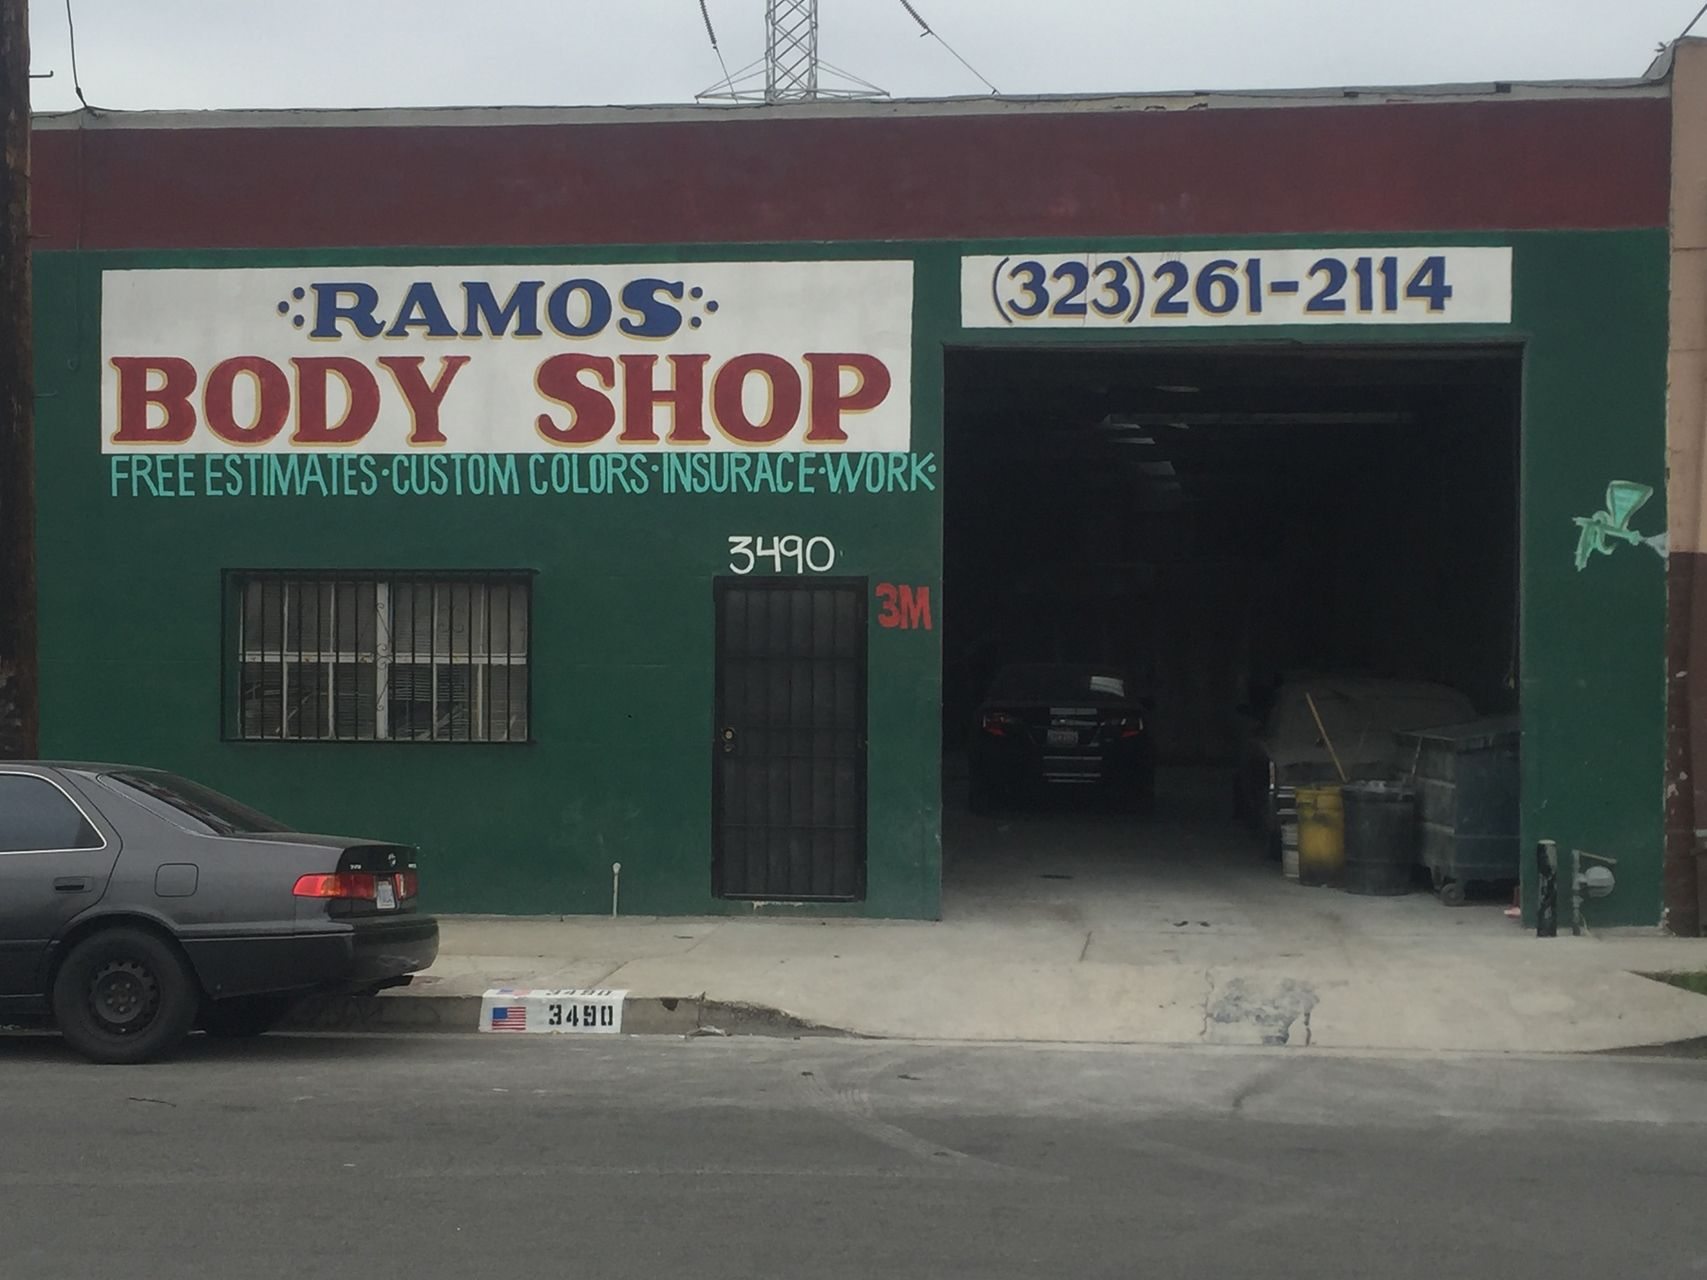 3490 Union Pacific Ave Los Angeles Ca 90023 Warehouse Property For Sale On Loopnet Com Auto Body Shop Los Angeles The Body Shop